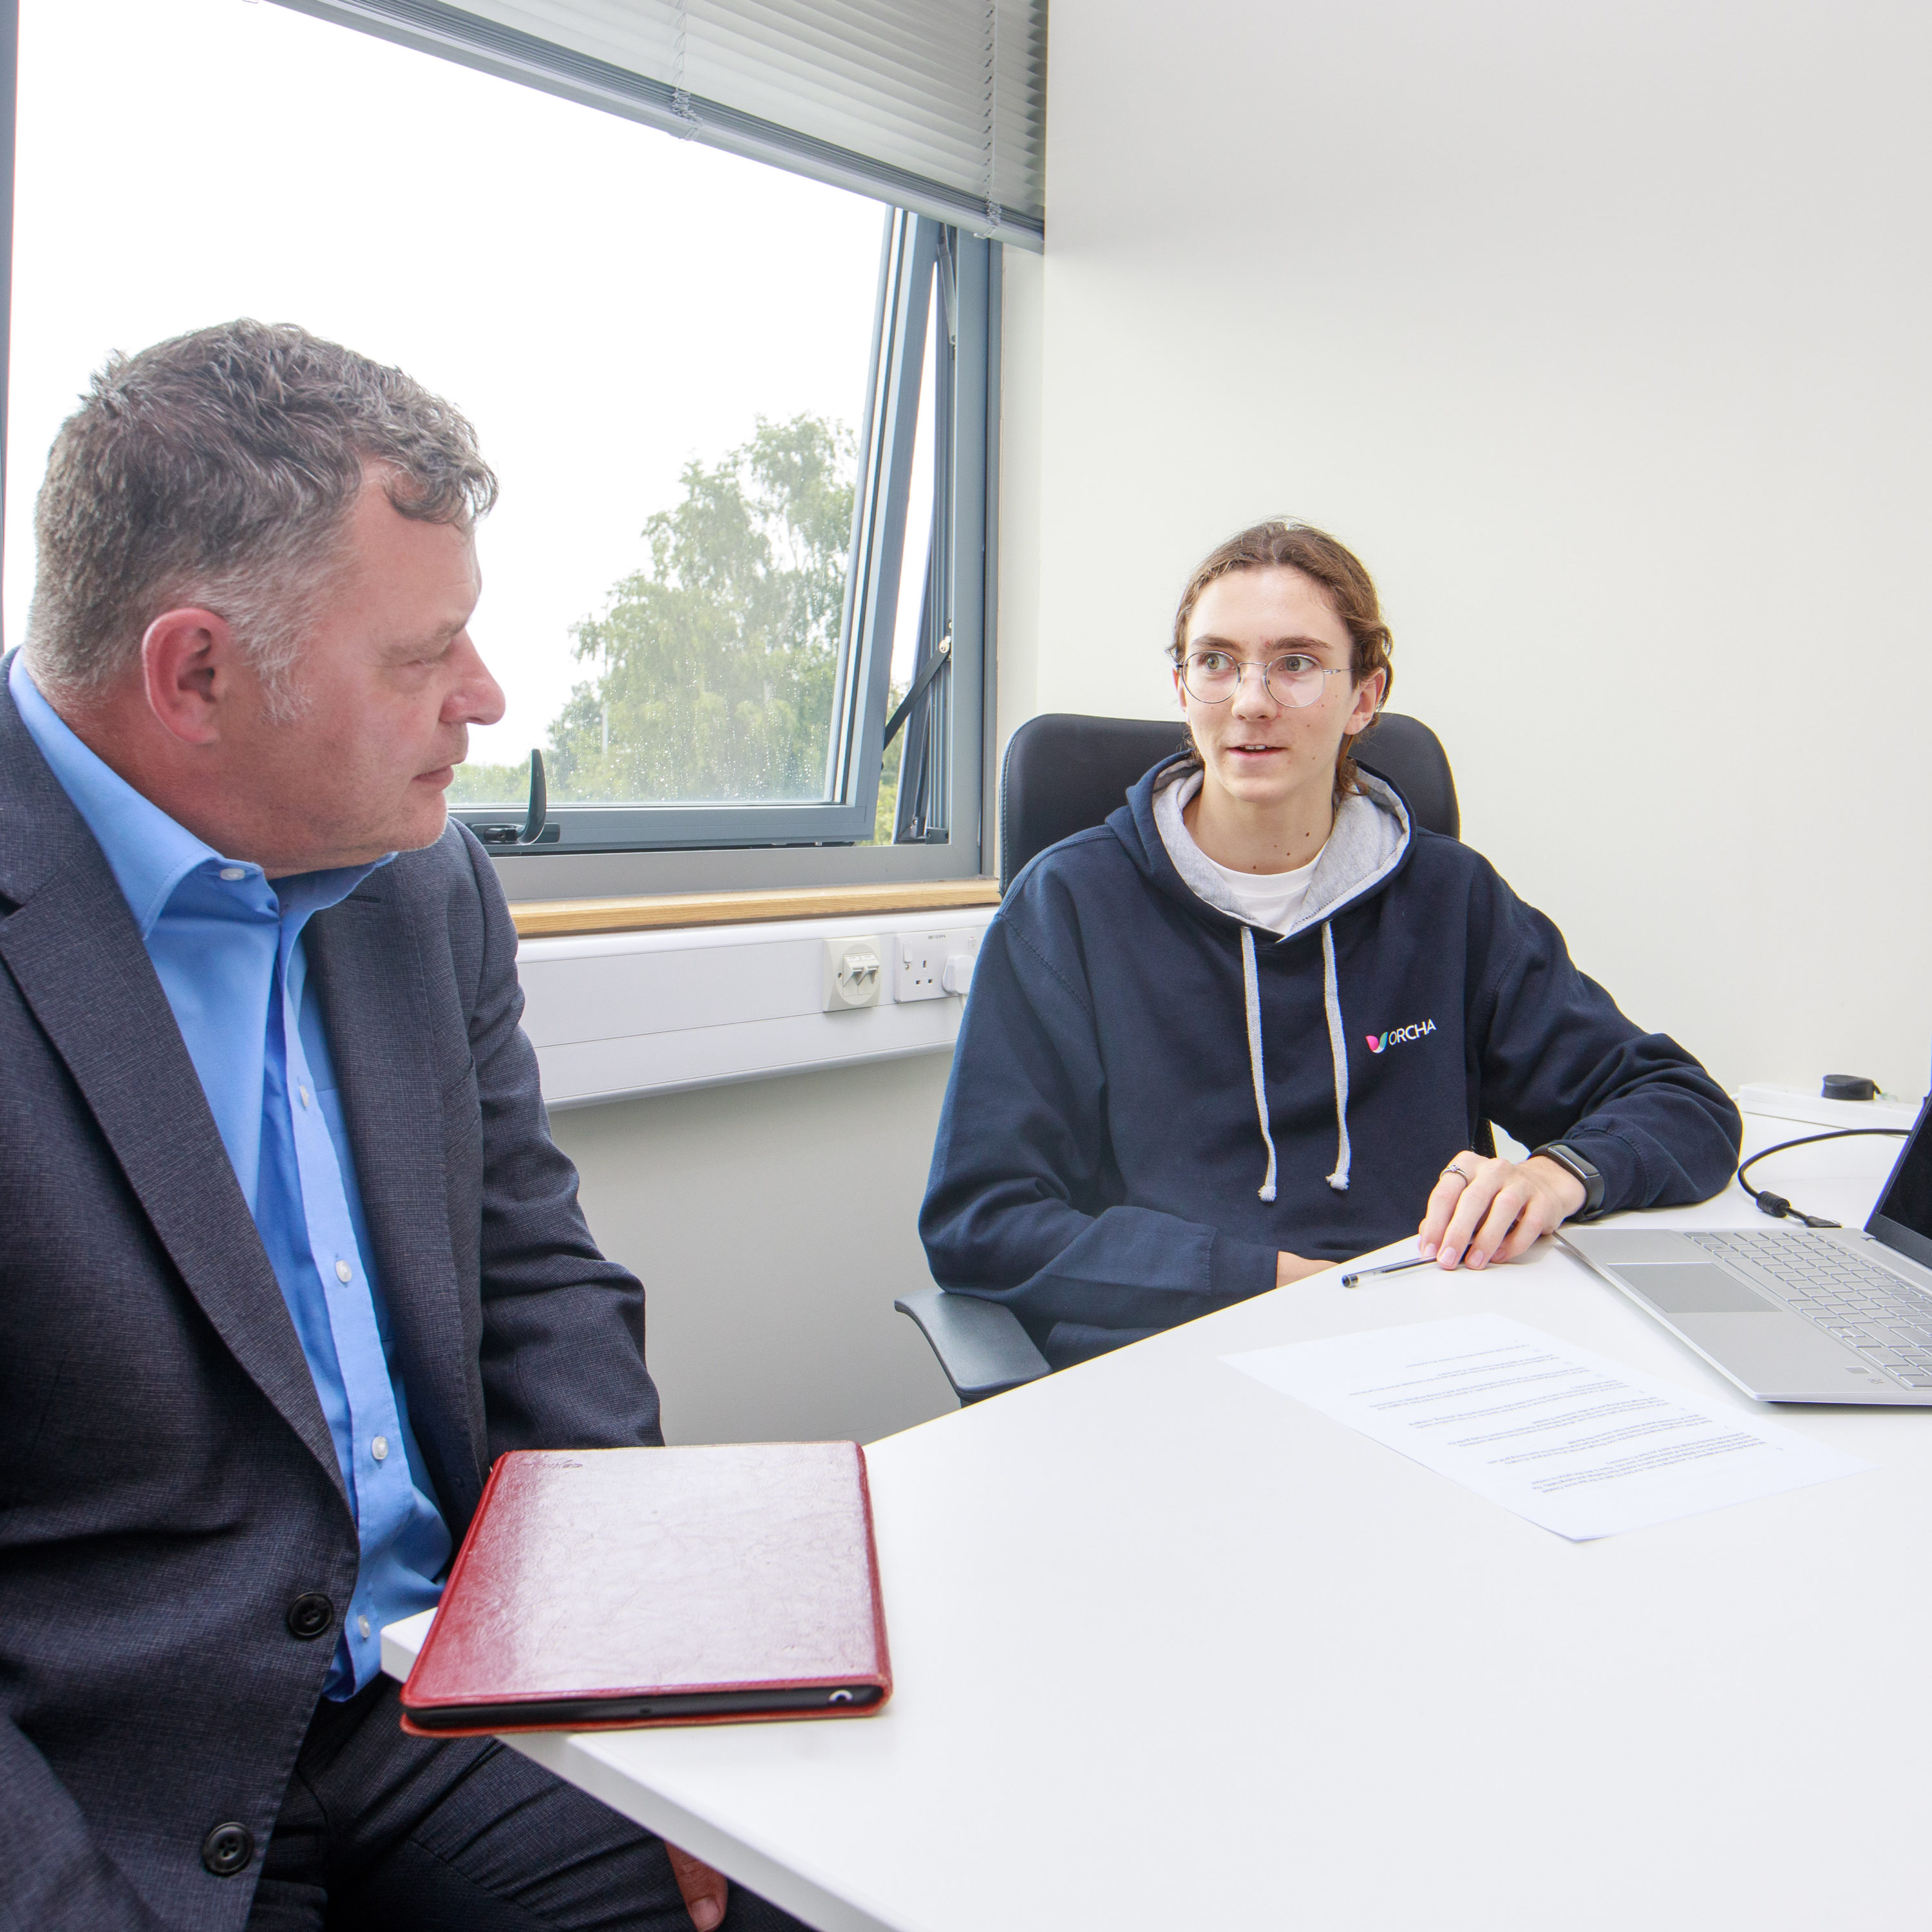 Mike Amesbury MP in discussion with Work Experience Student James McCann